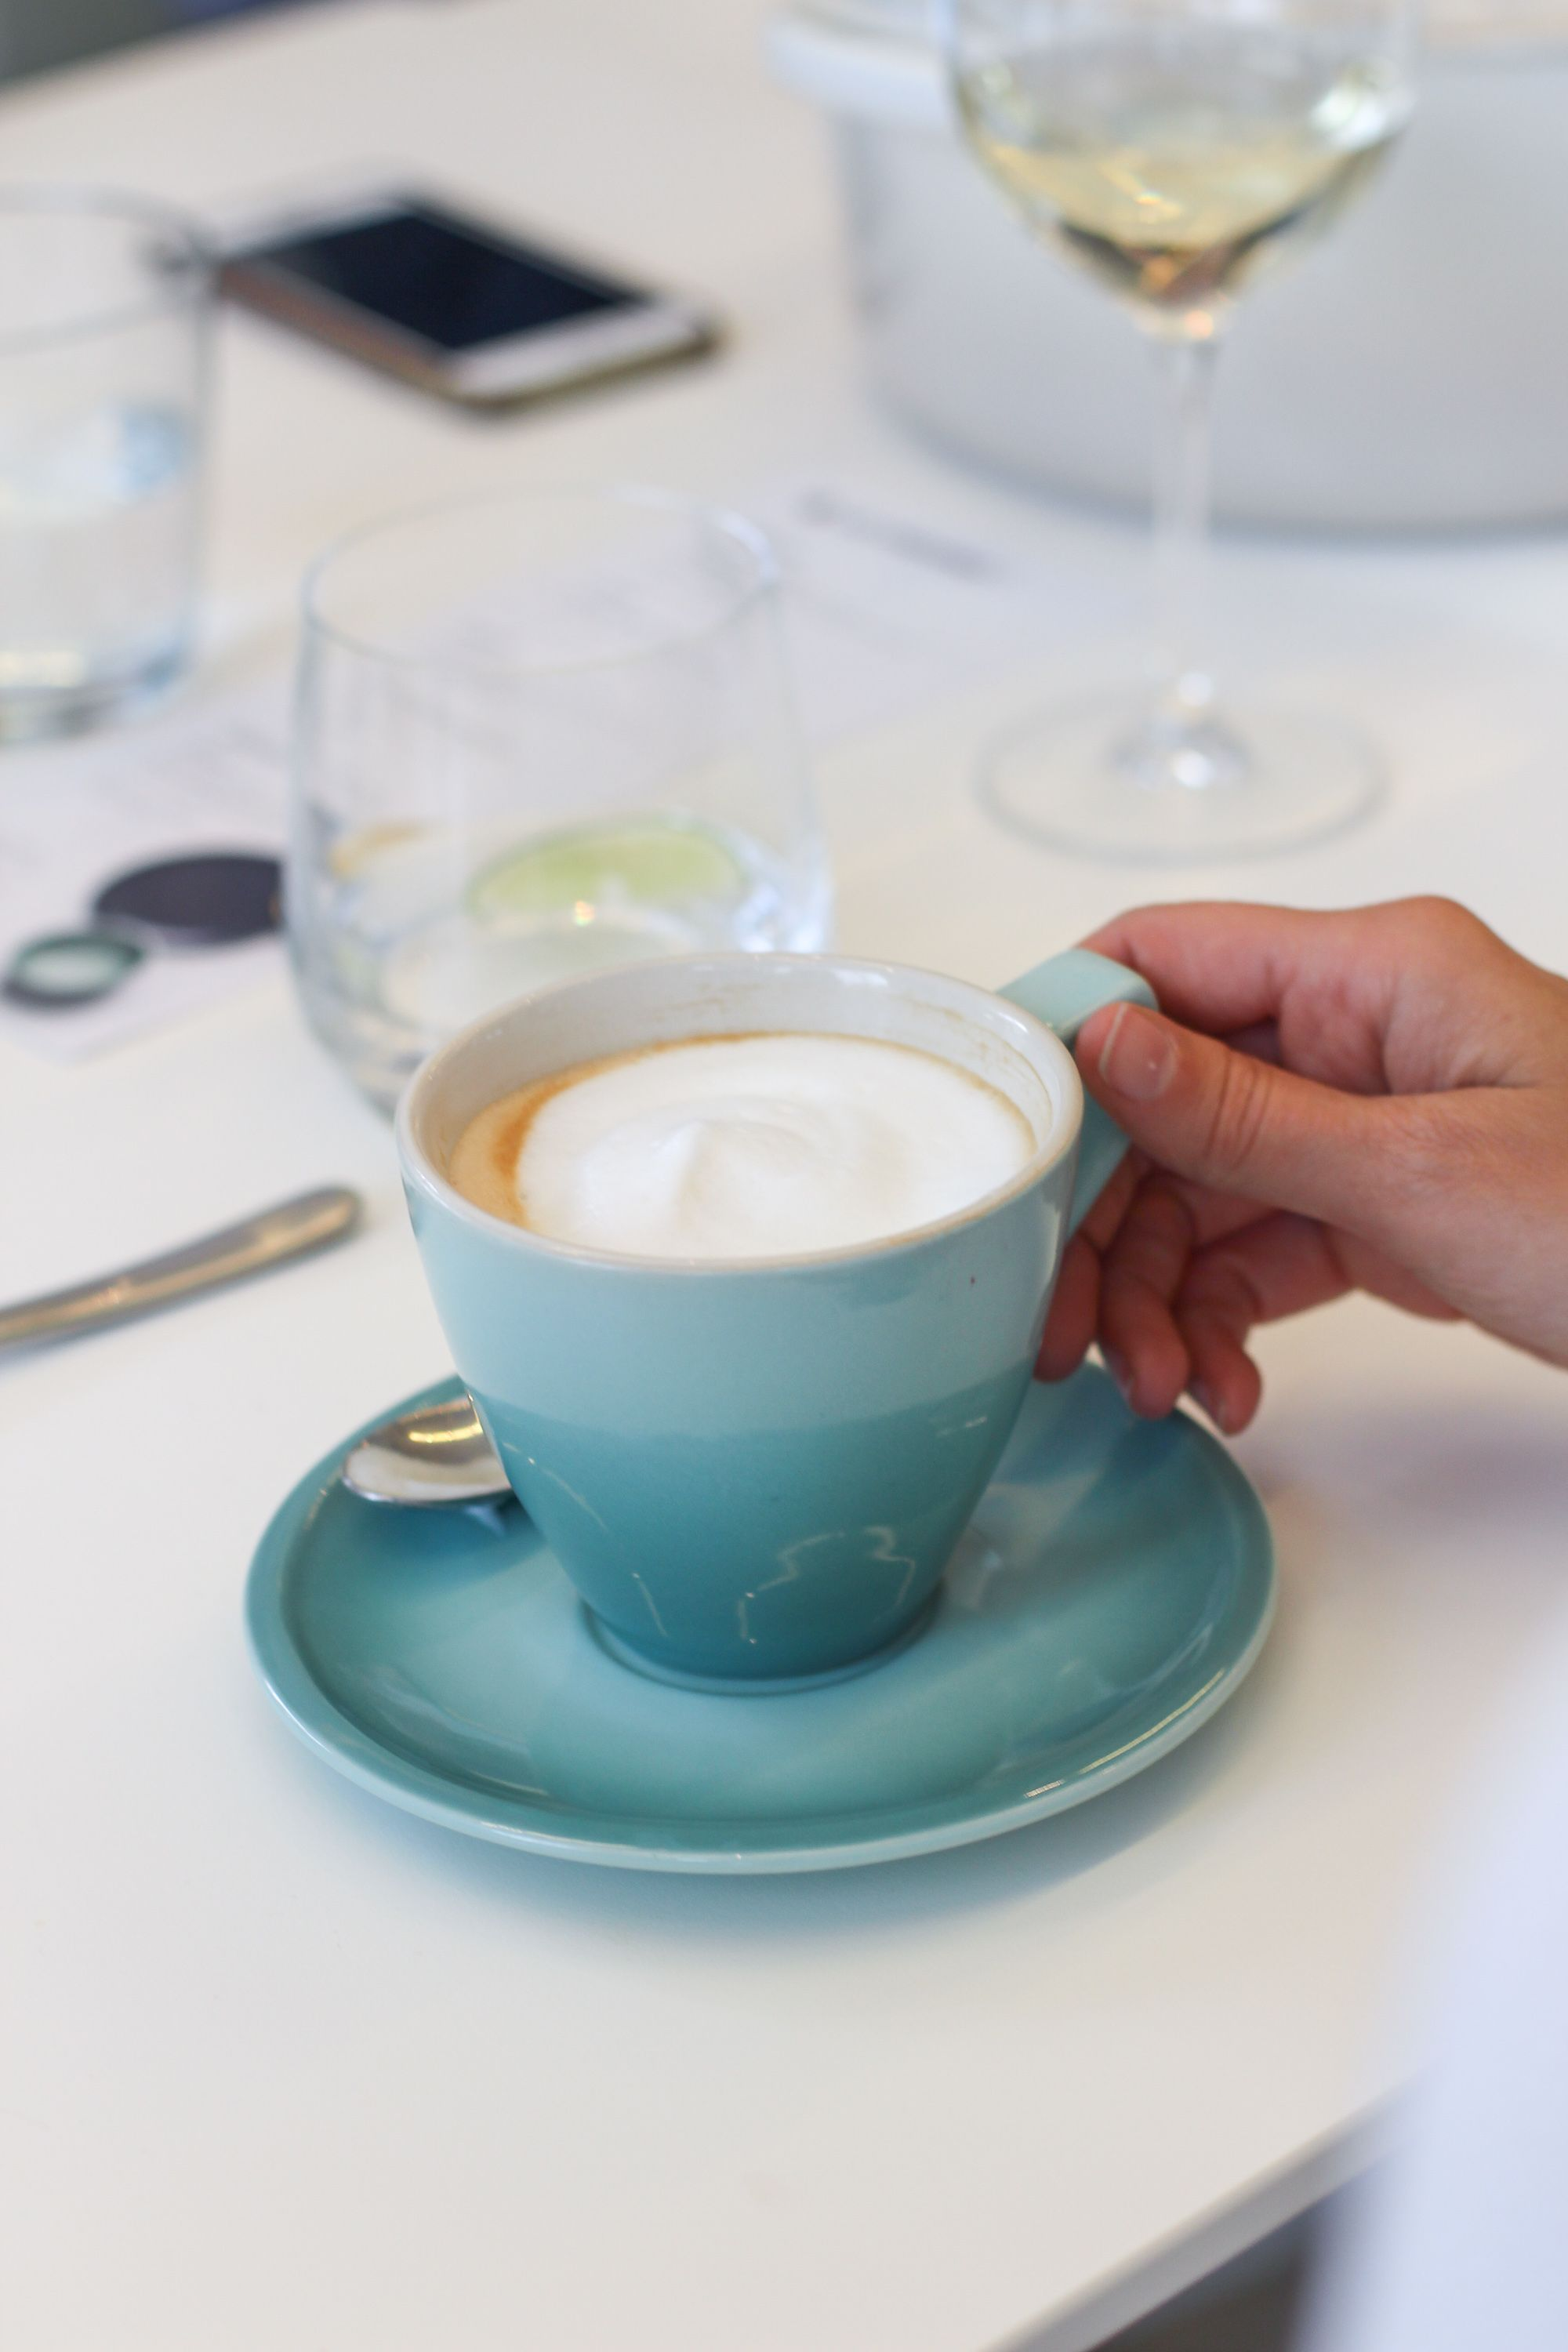 Le Creuset Canada - Minimalist Dinnerware Collection cappuccino cup and saucer | Chu on This  #MinimalistDinneware #LeCreuset #LeCreusetLove #LeCreusetCanada